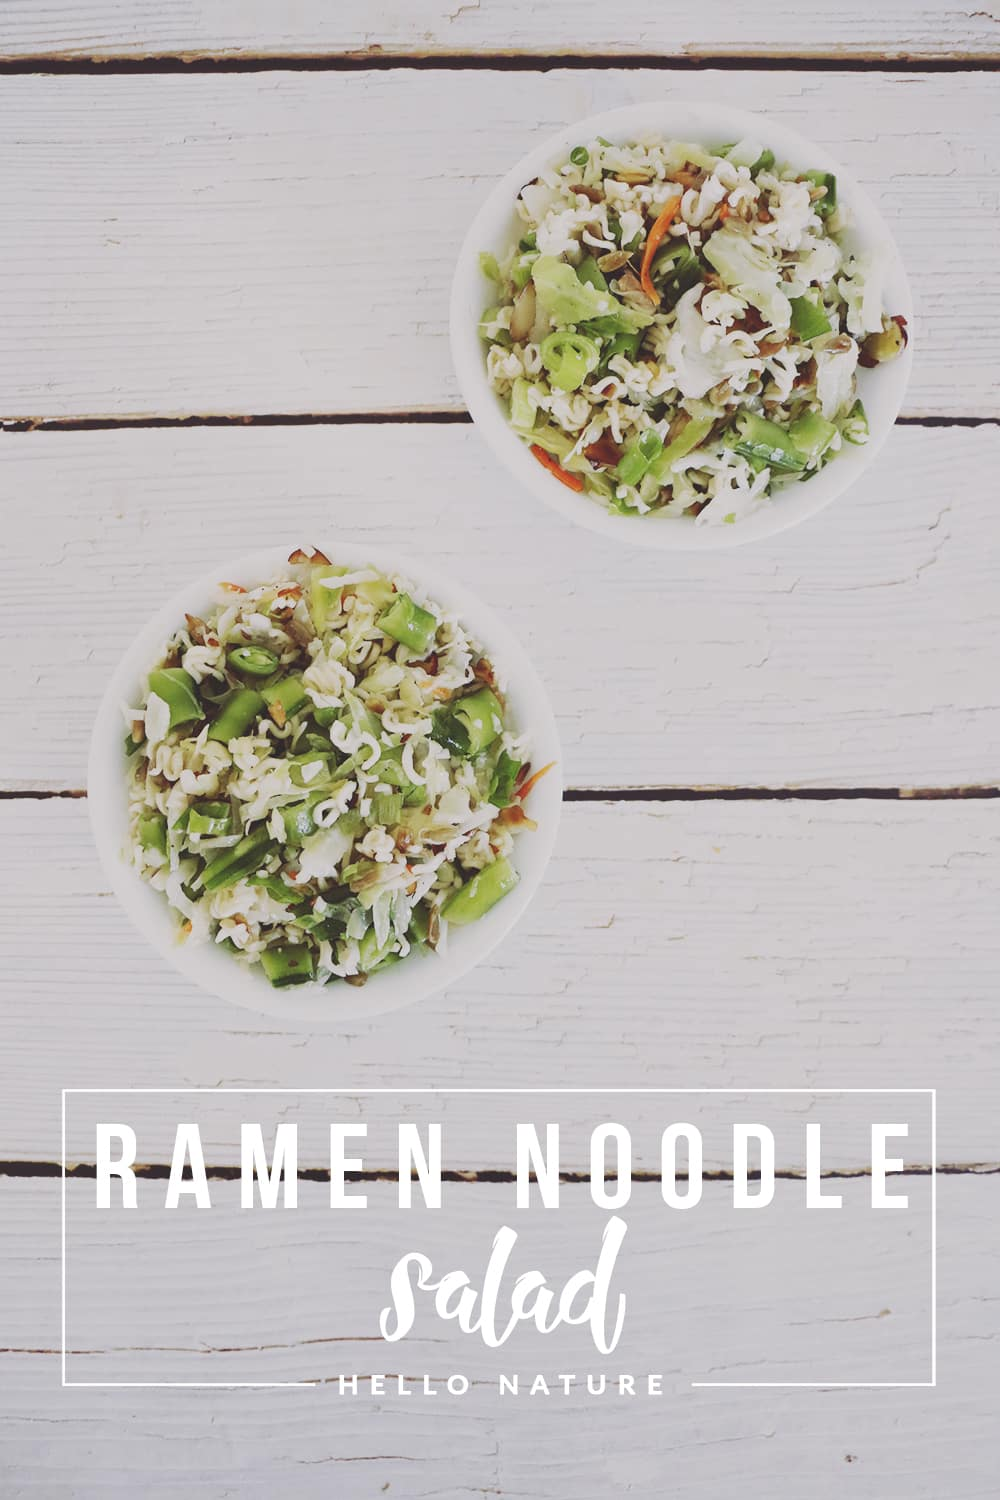 This ramen noodle salad recipe is perfect for Summer get-togethers and picnics! It's light, delicious and super simple to make!